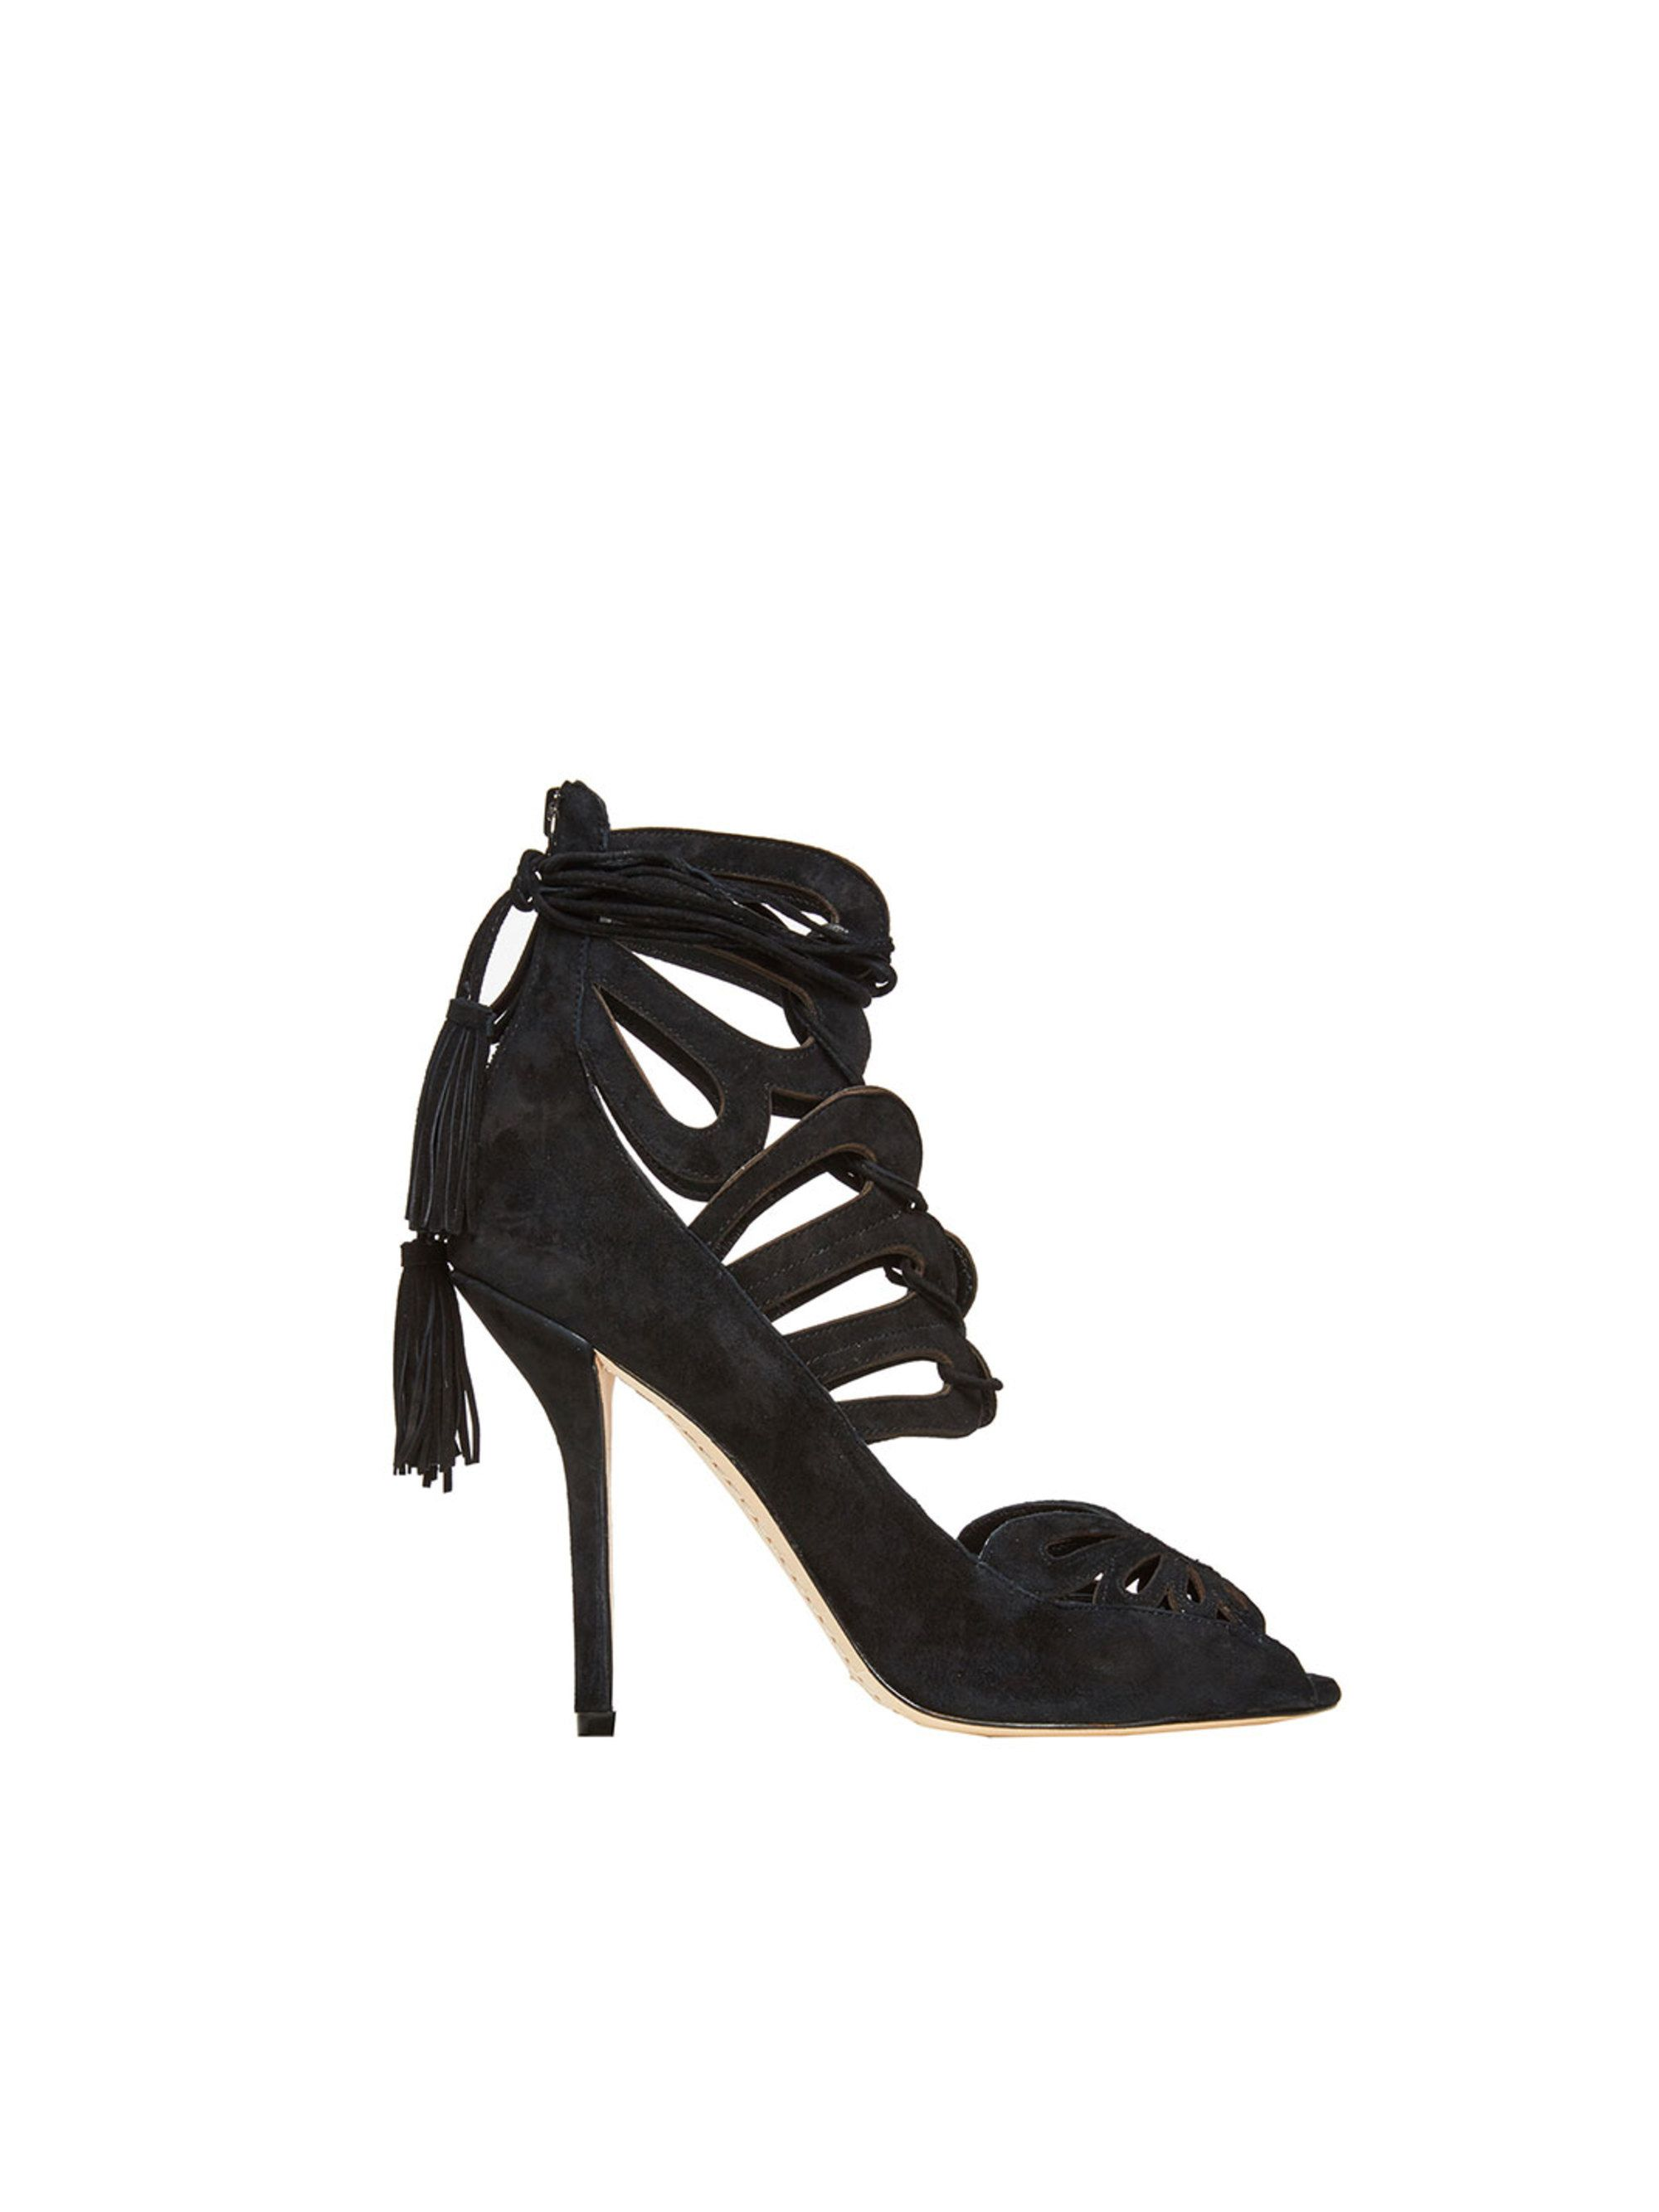 6b4e24ad03 BLACK NATALIE HEEL by Alice + Olivia Black High Heel Sandals, Black Pumps,  Sexy